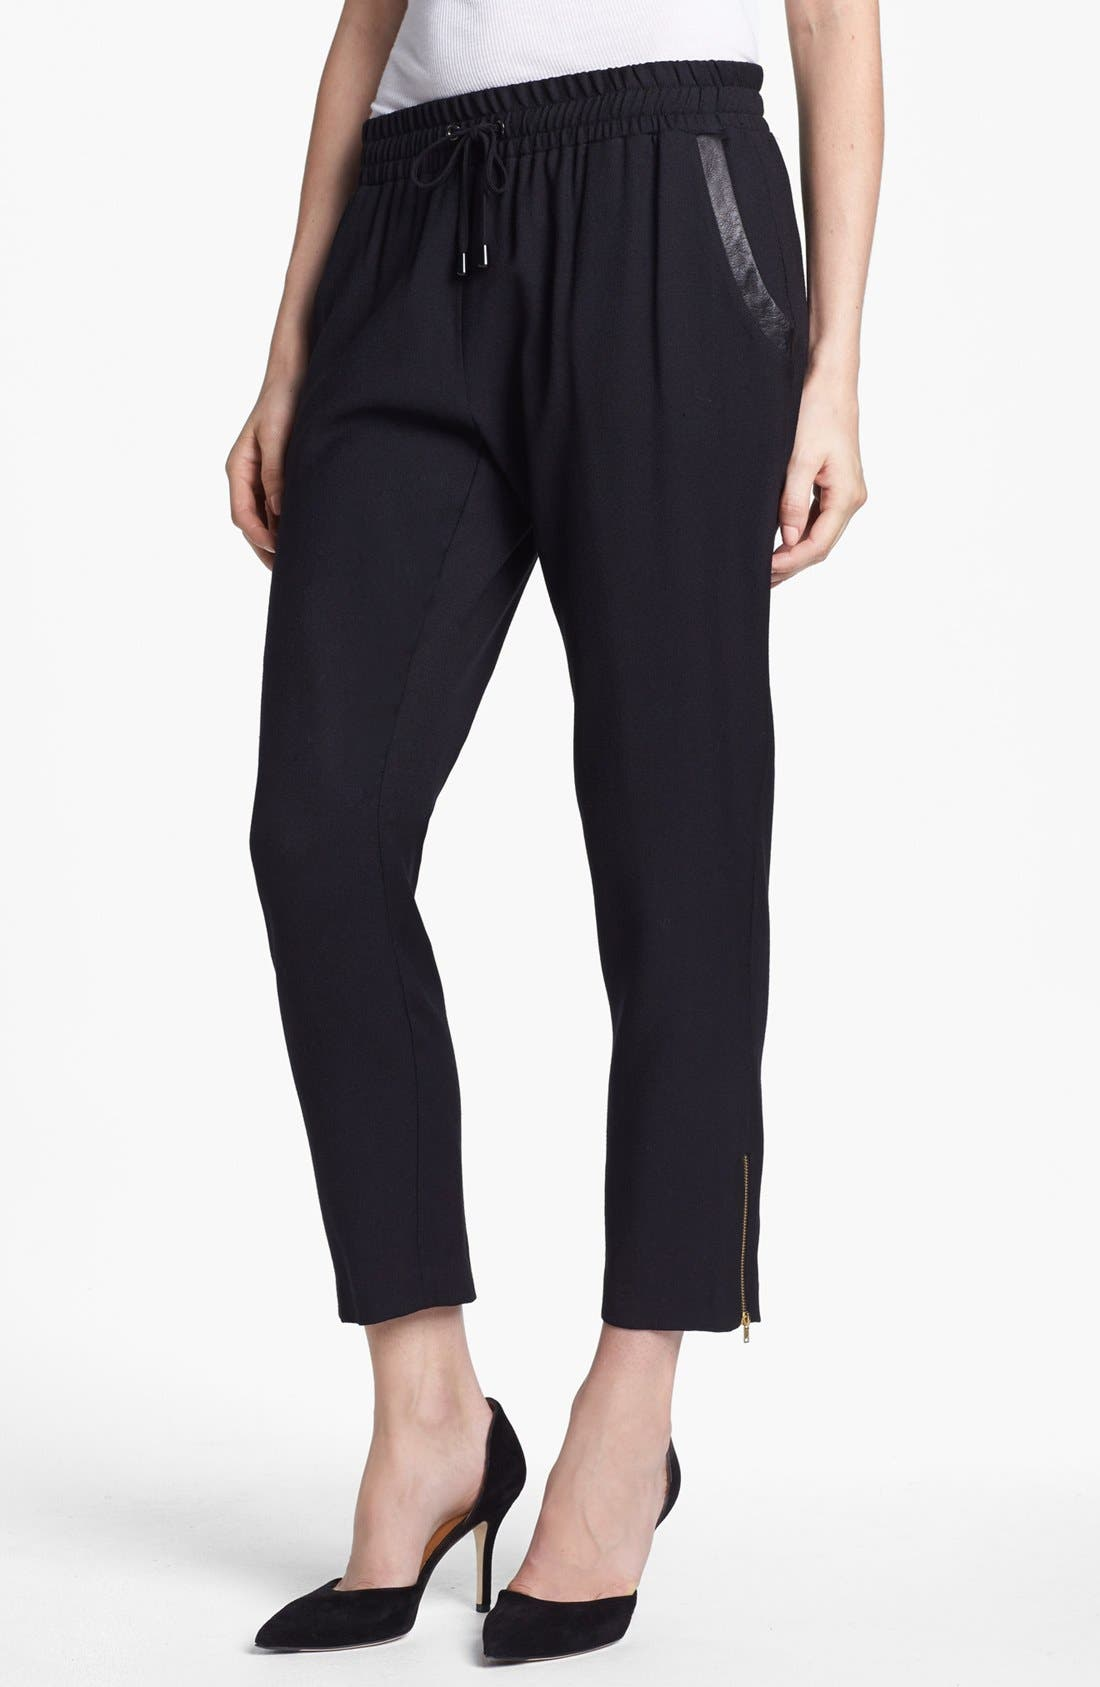 Alternate Image 1 Selected - Parker 'Bowery' Crop Pants